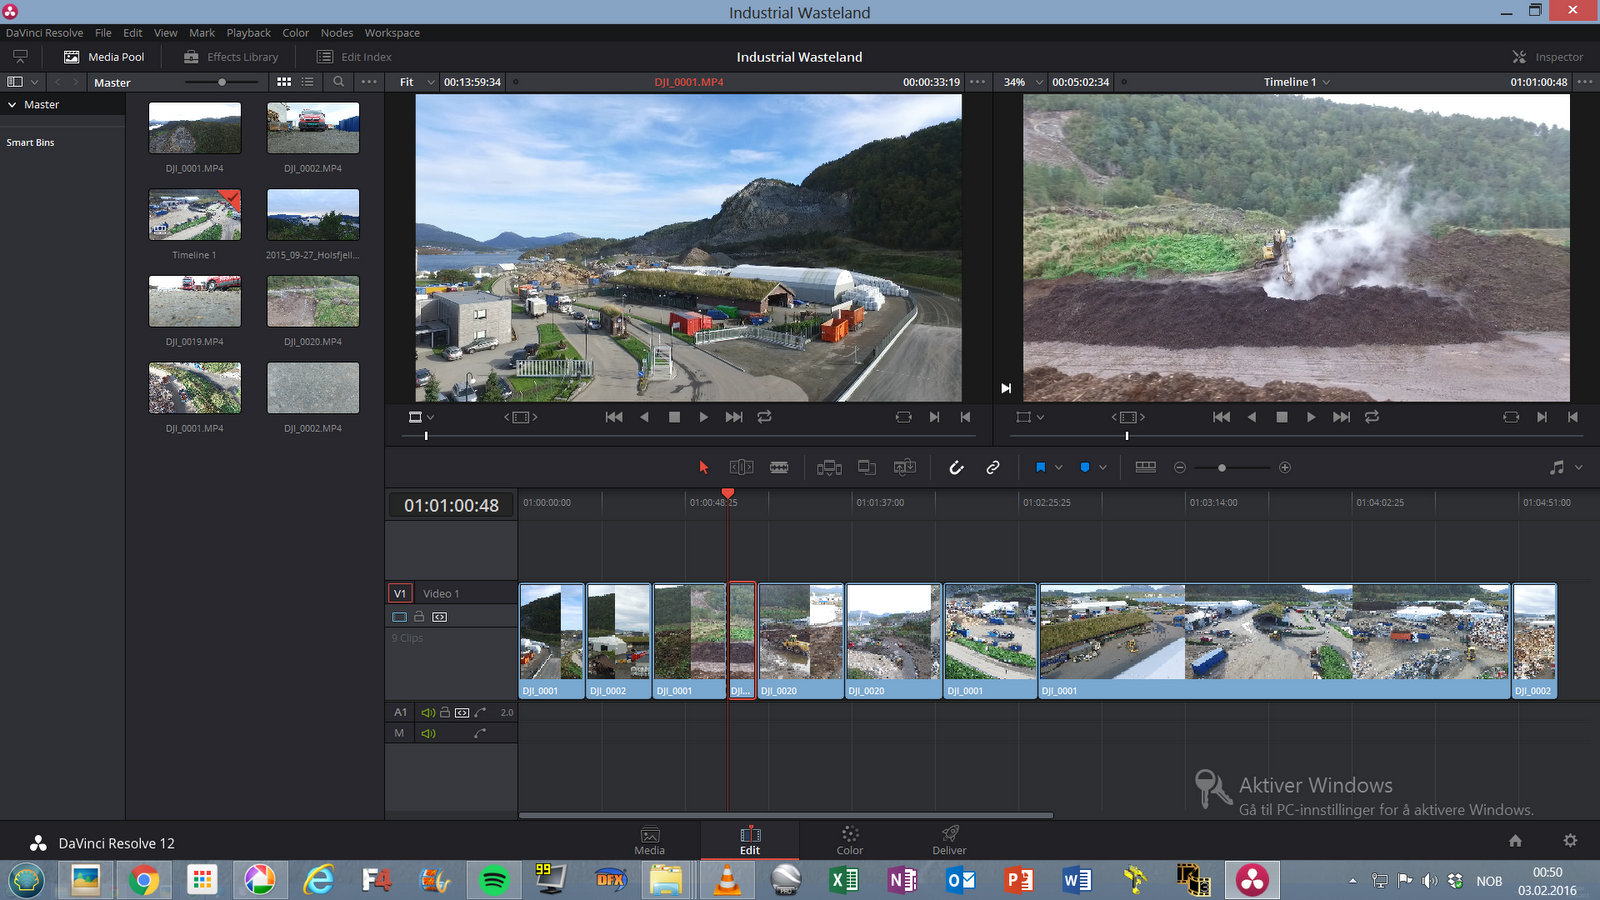 DaVinchi_Resolve_Edit_03.02.2016.jpg